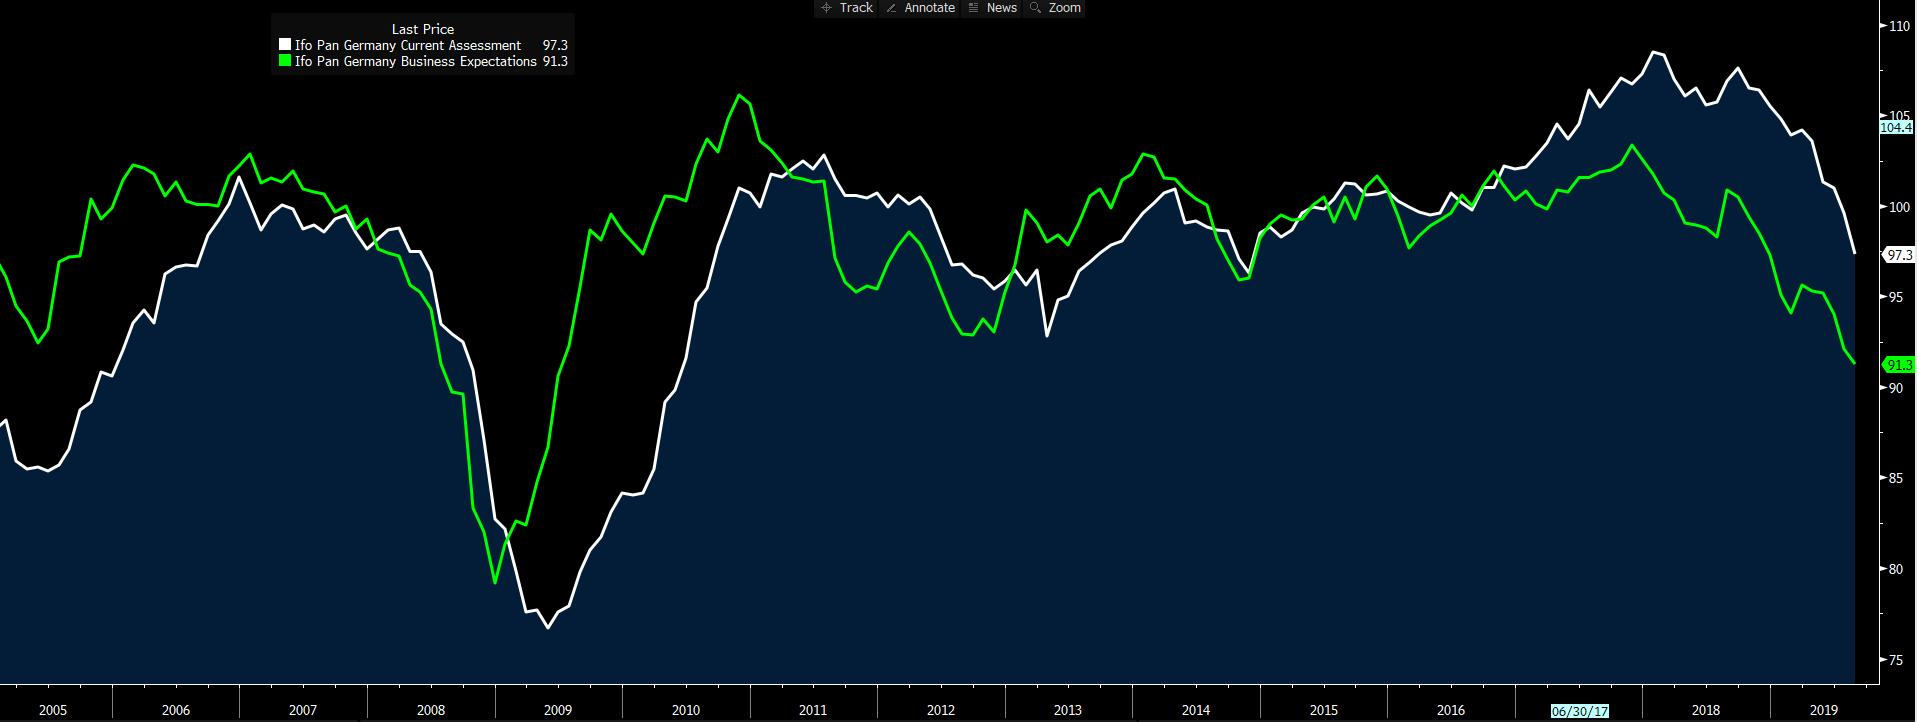 Green: IFO business expectations. White: German GDP.